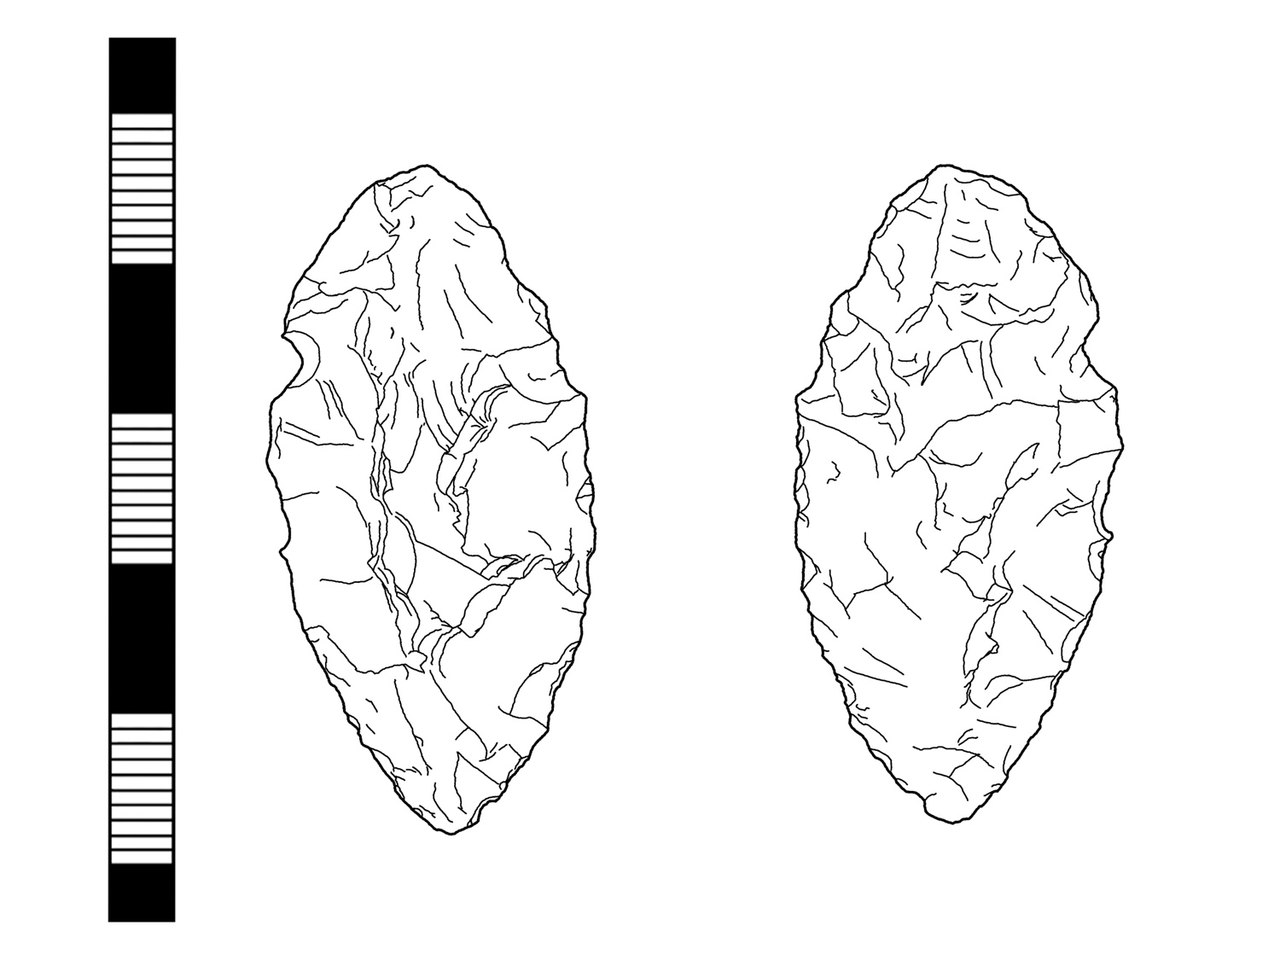 1280x960 Fileneolithic Leaf Shaped Arrowhead (Drawing) (Findid 203142).jpg